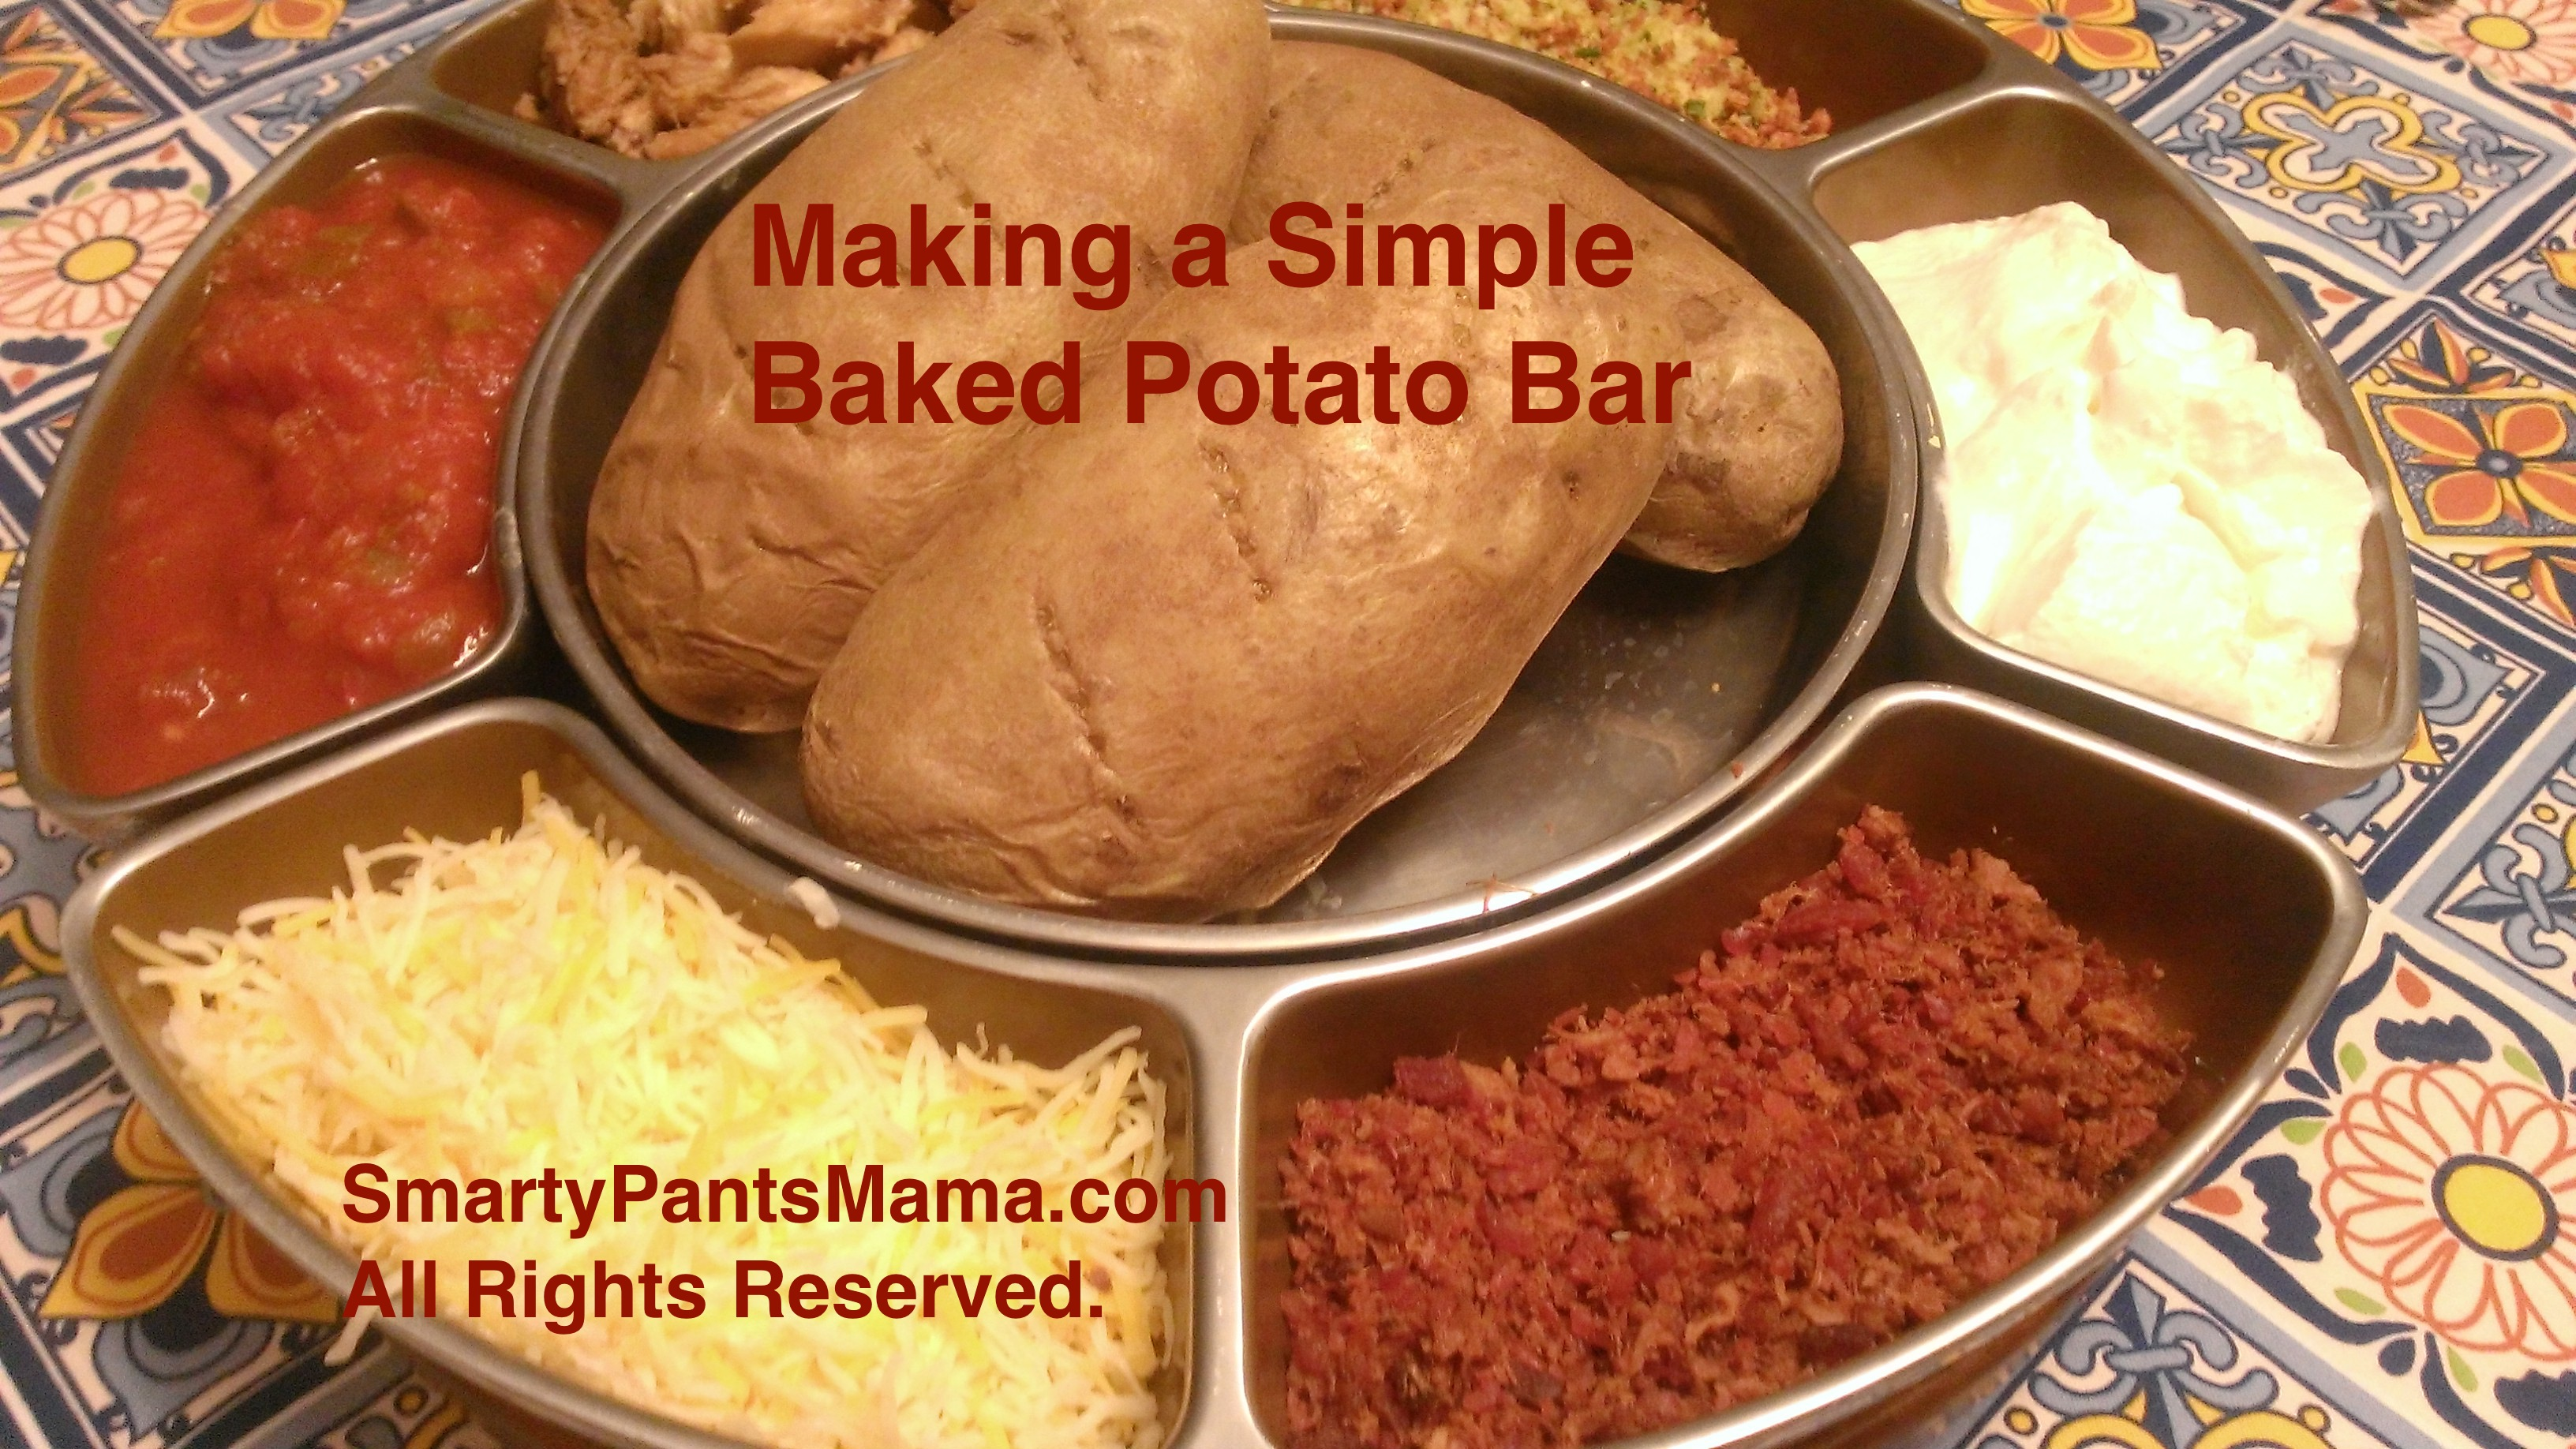 Baked Potato Bar for Dinner - Smarty Pants Mama